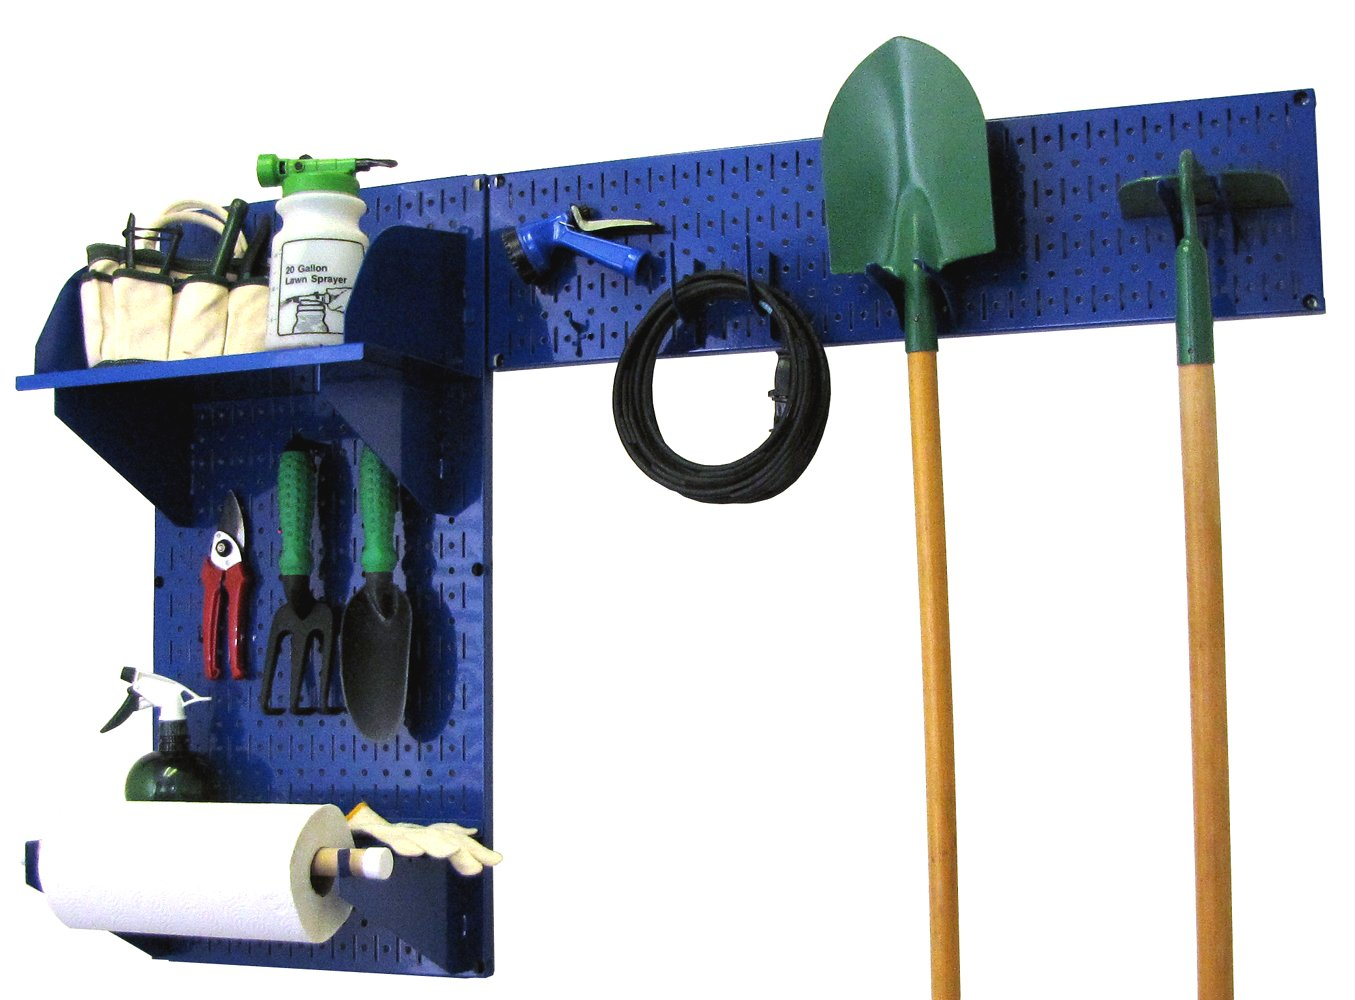 Wall Control 30-GRD-200 BUW Pegboard Garden Supplies Storage and Organization Garden Tool Organizer Kit with Blue Pegboard and White Accessories